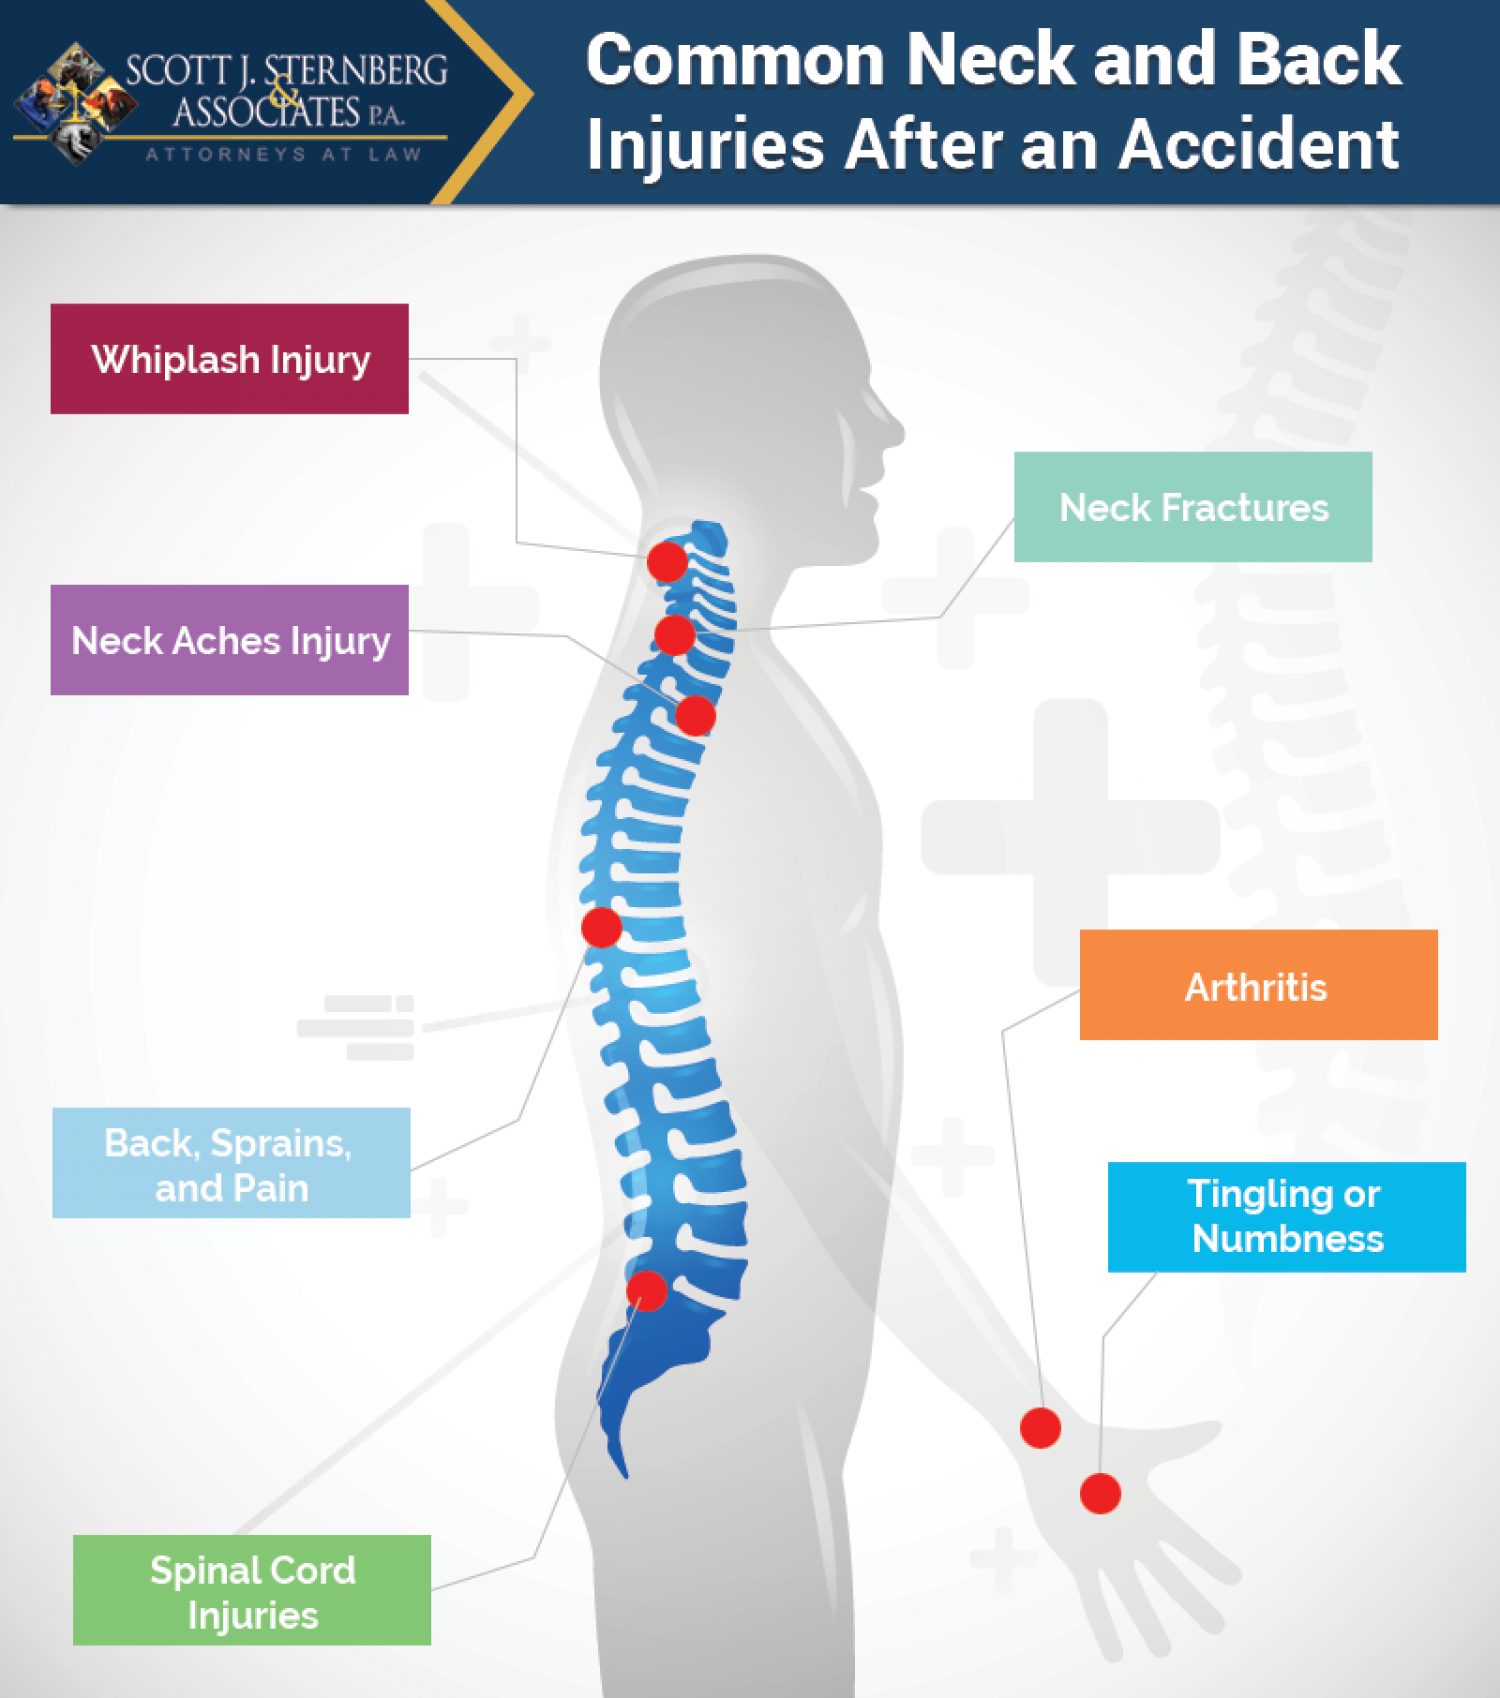 Why Are Neck and Back Injuries So Common After an Accident? Infographic